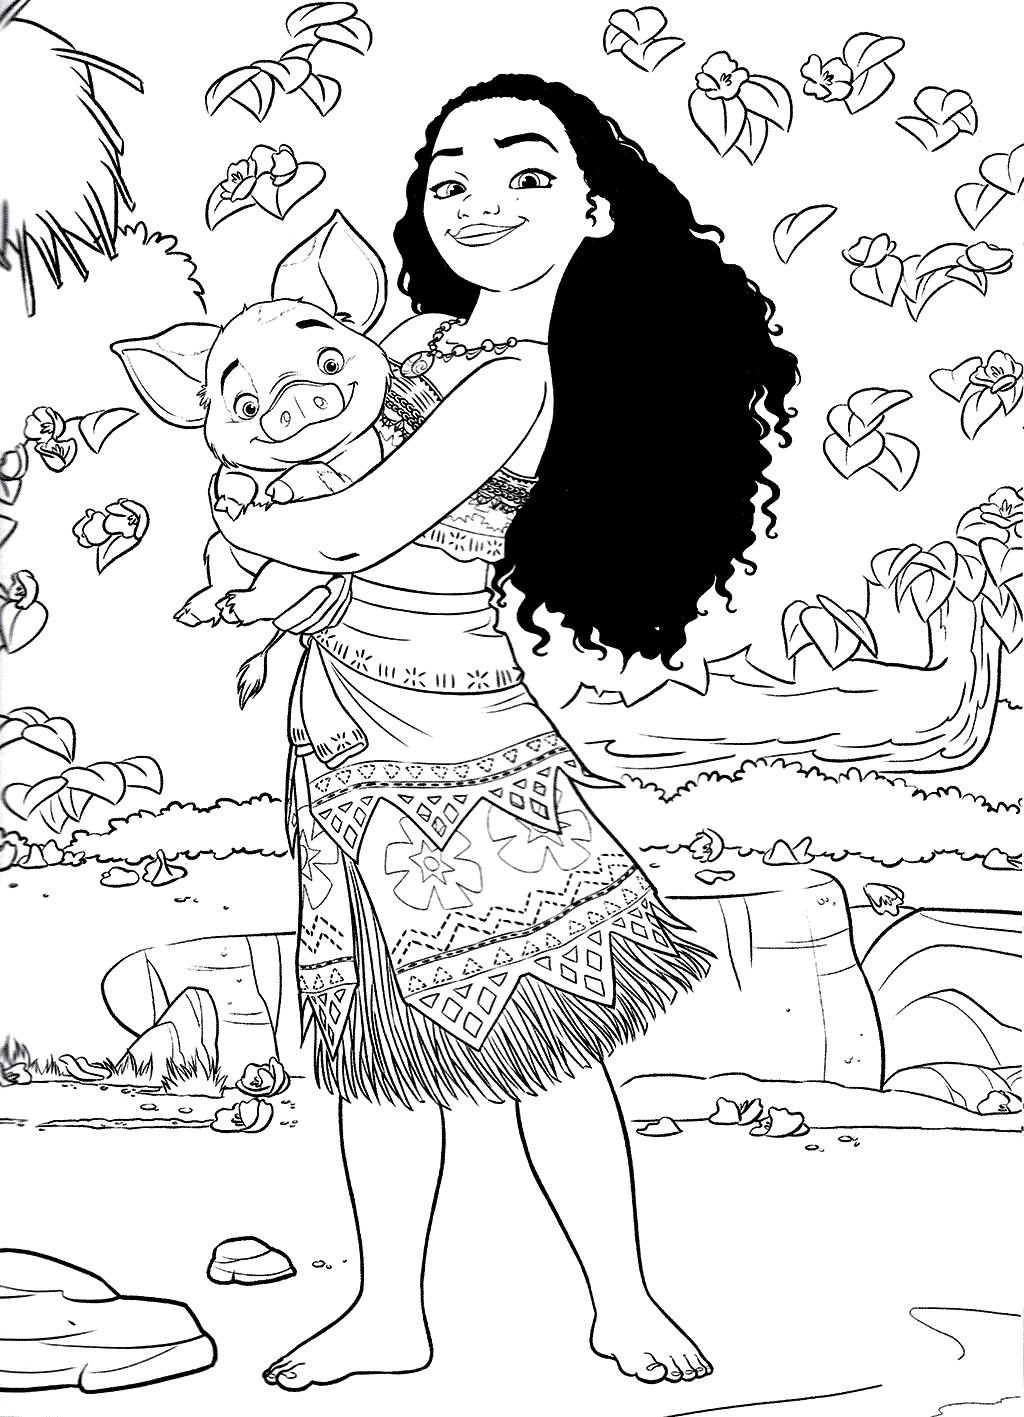 P 40 coloring pages - Moana Coloring Pages